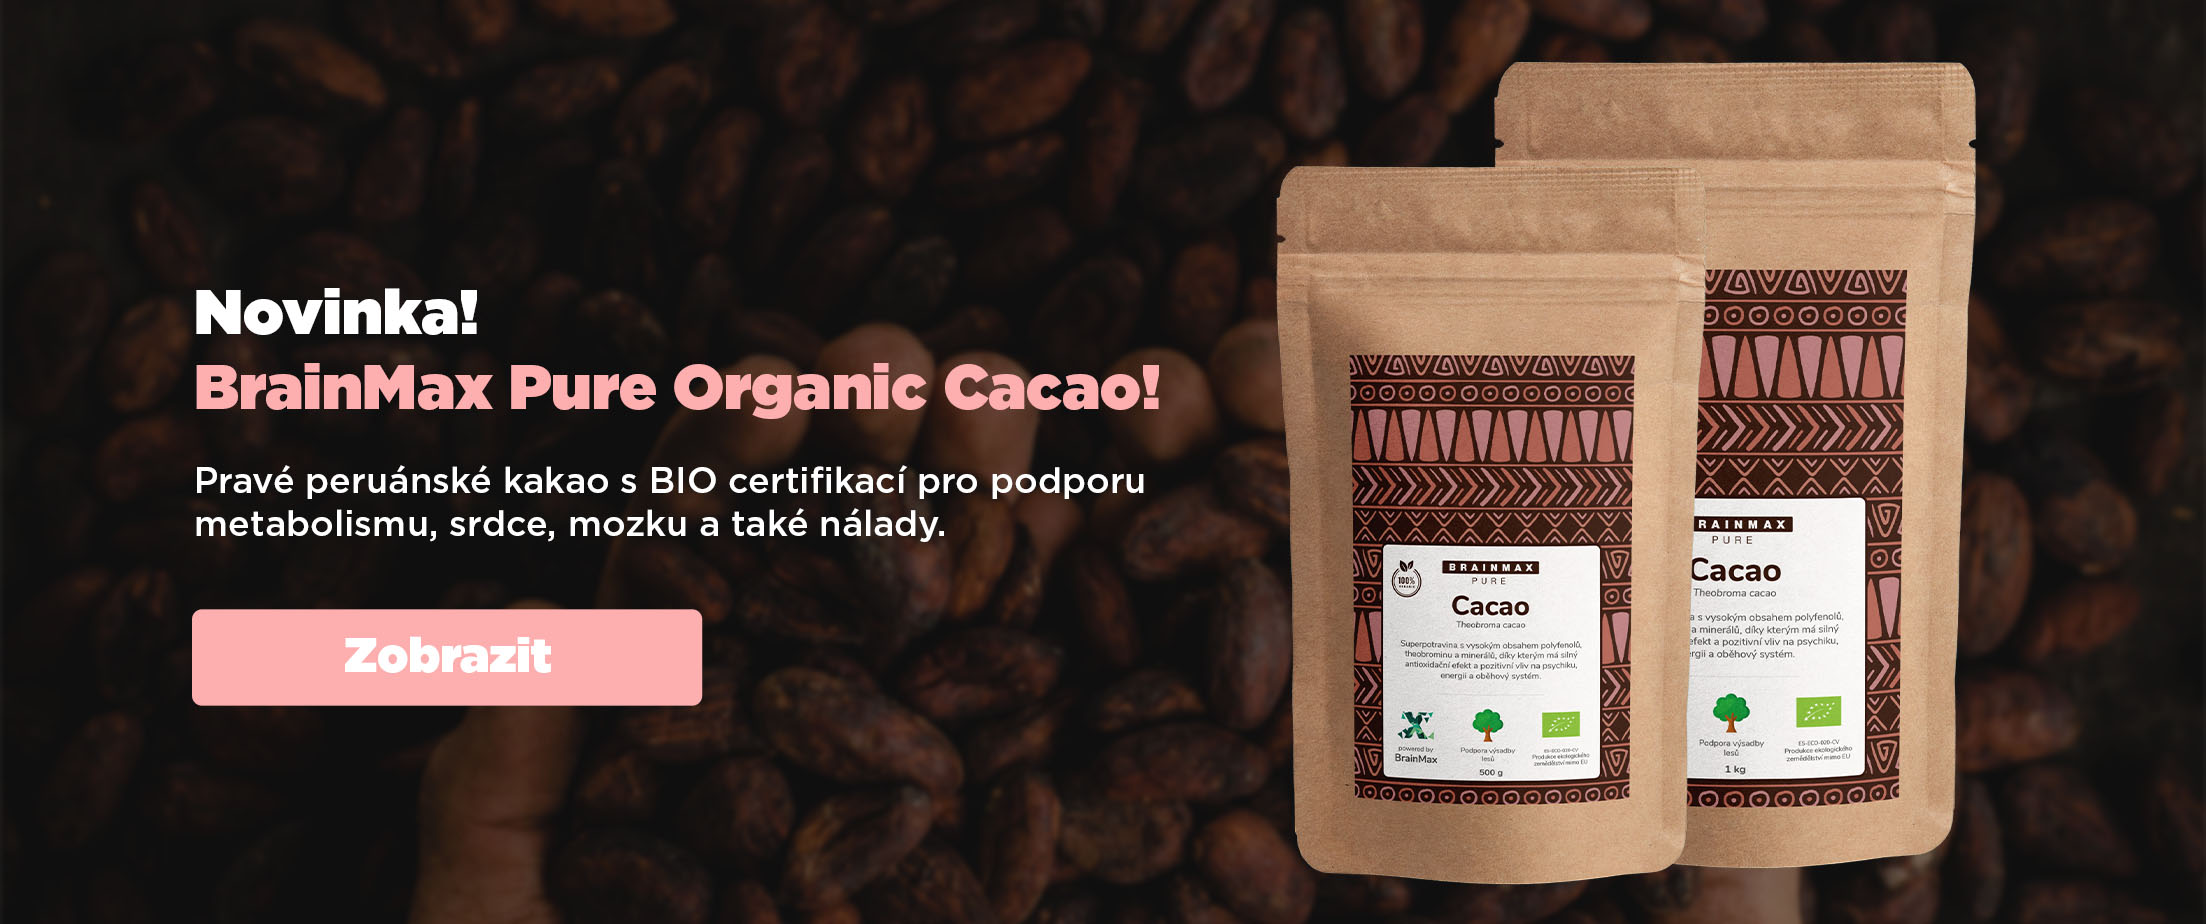 Brainmax Pure Organic Cacao